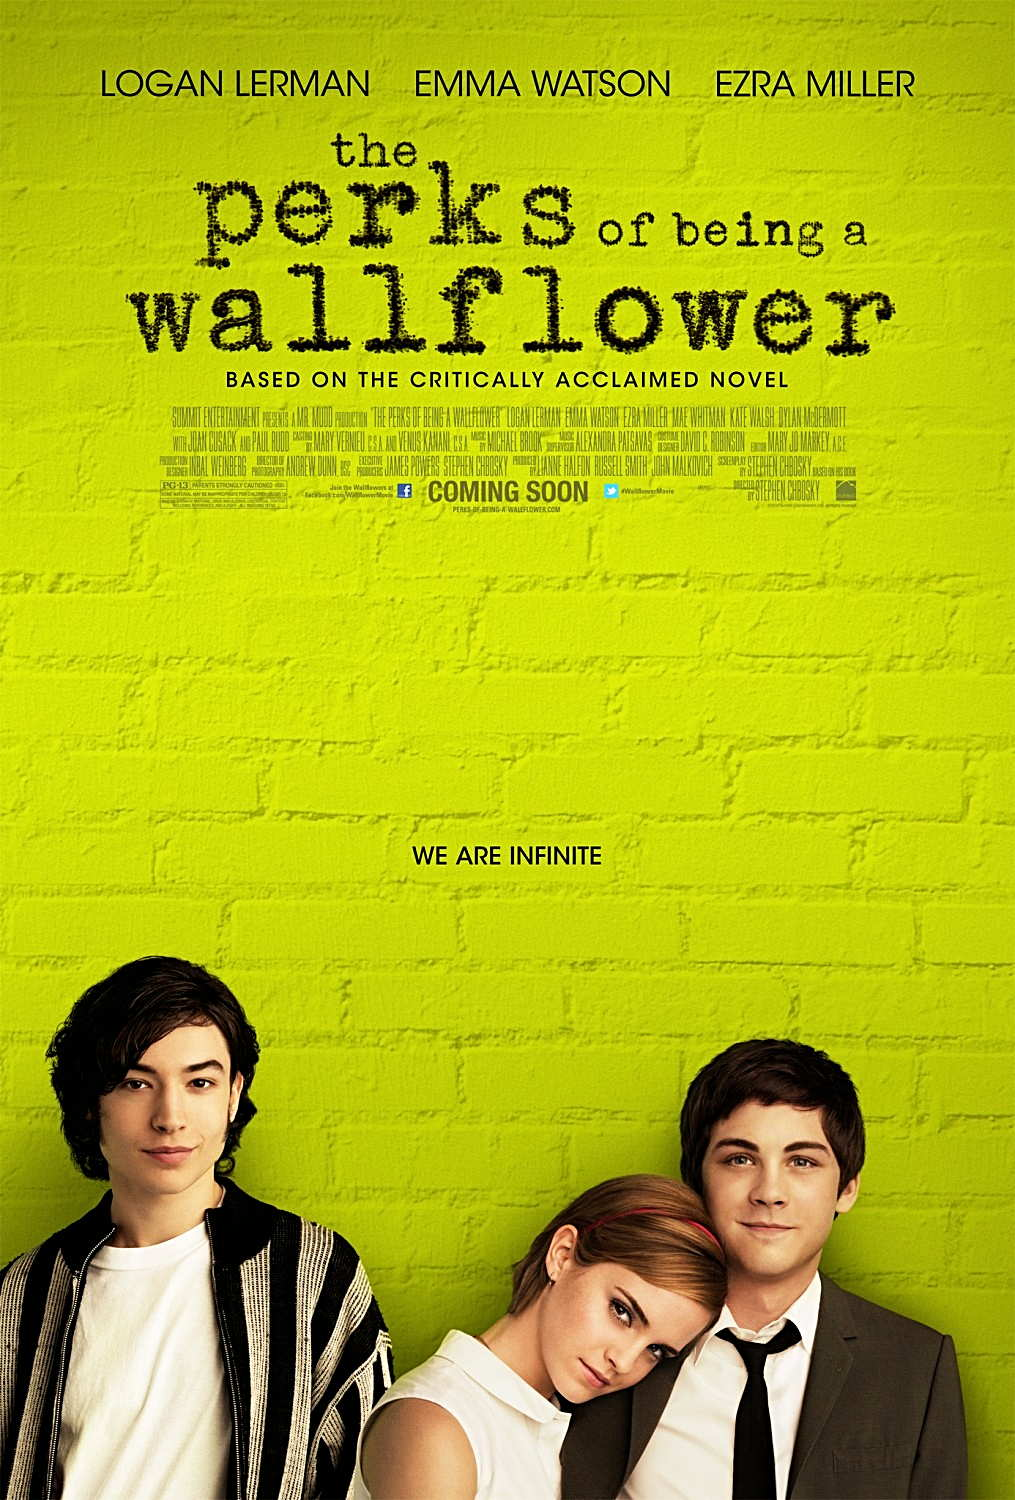 the perks of being a wallflower (novel) short essay The perks of being a wallflower is a novel about corruption of youth with an underlying rebellion associated with the counterculture of the 1990s cautionary tales are intertwined and hidden throughout the book.